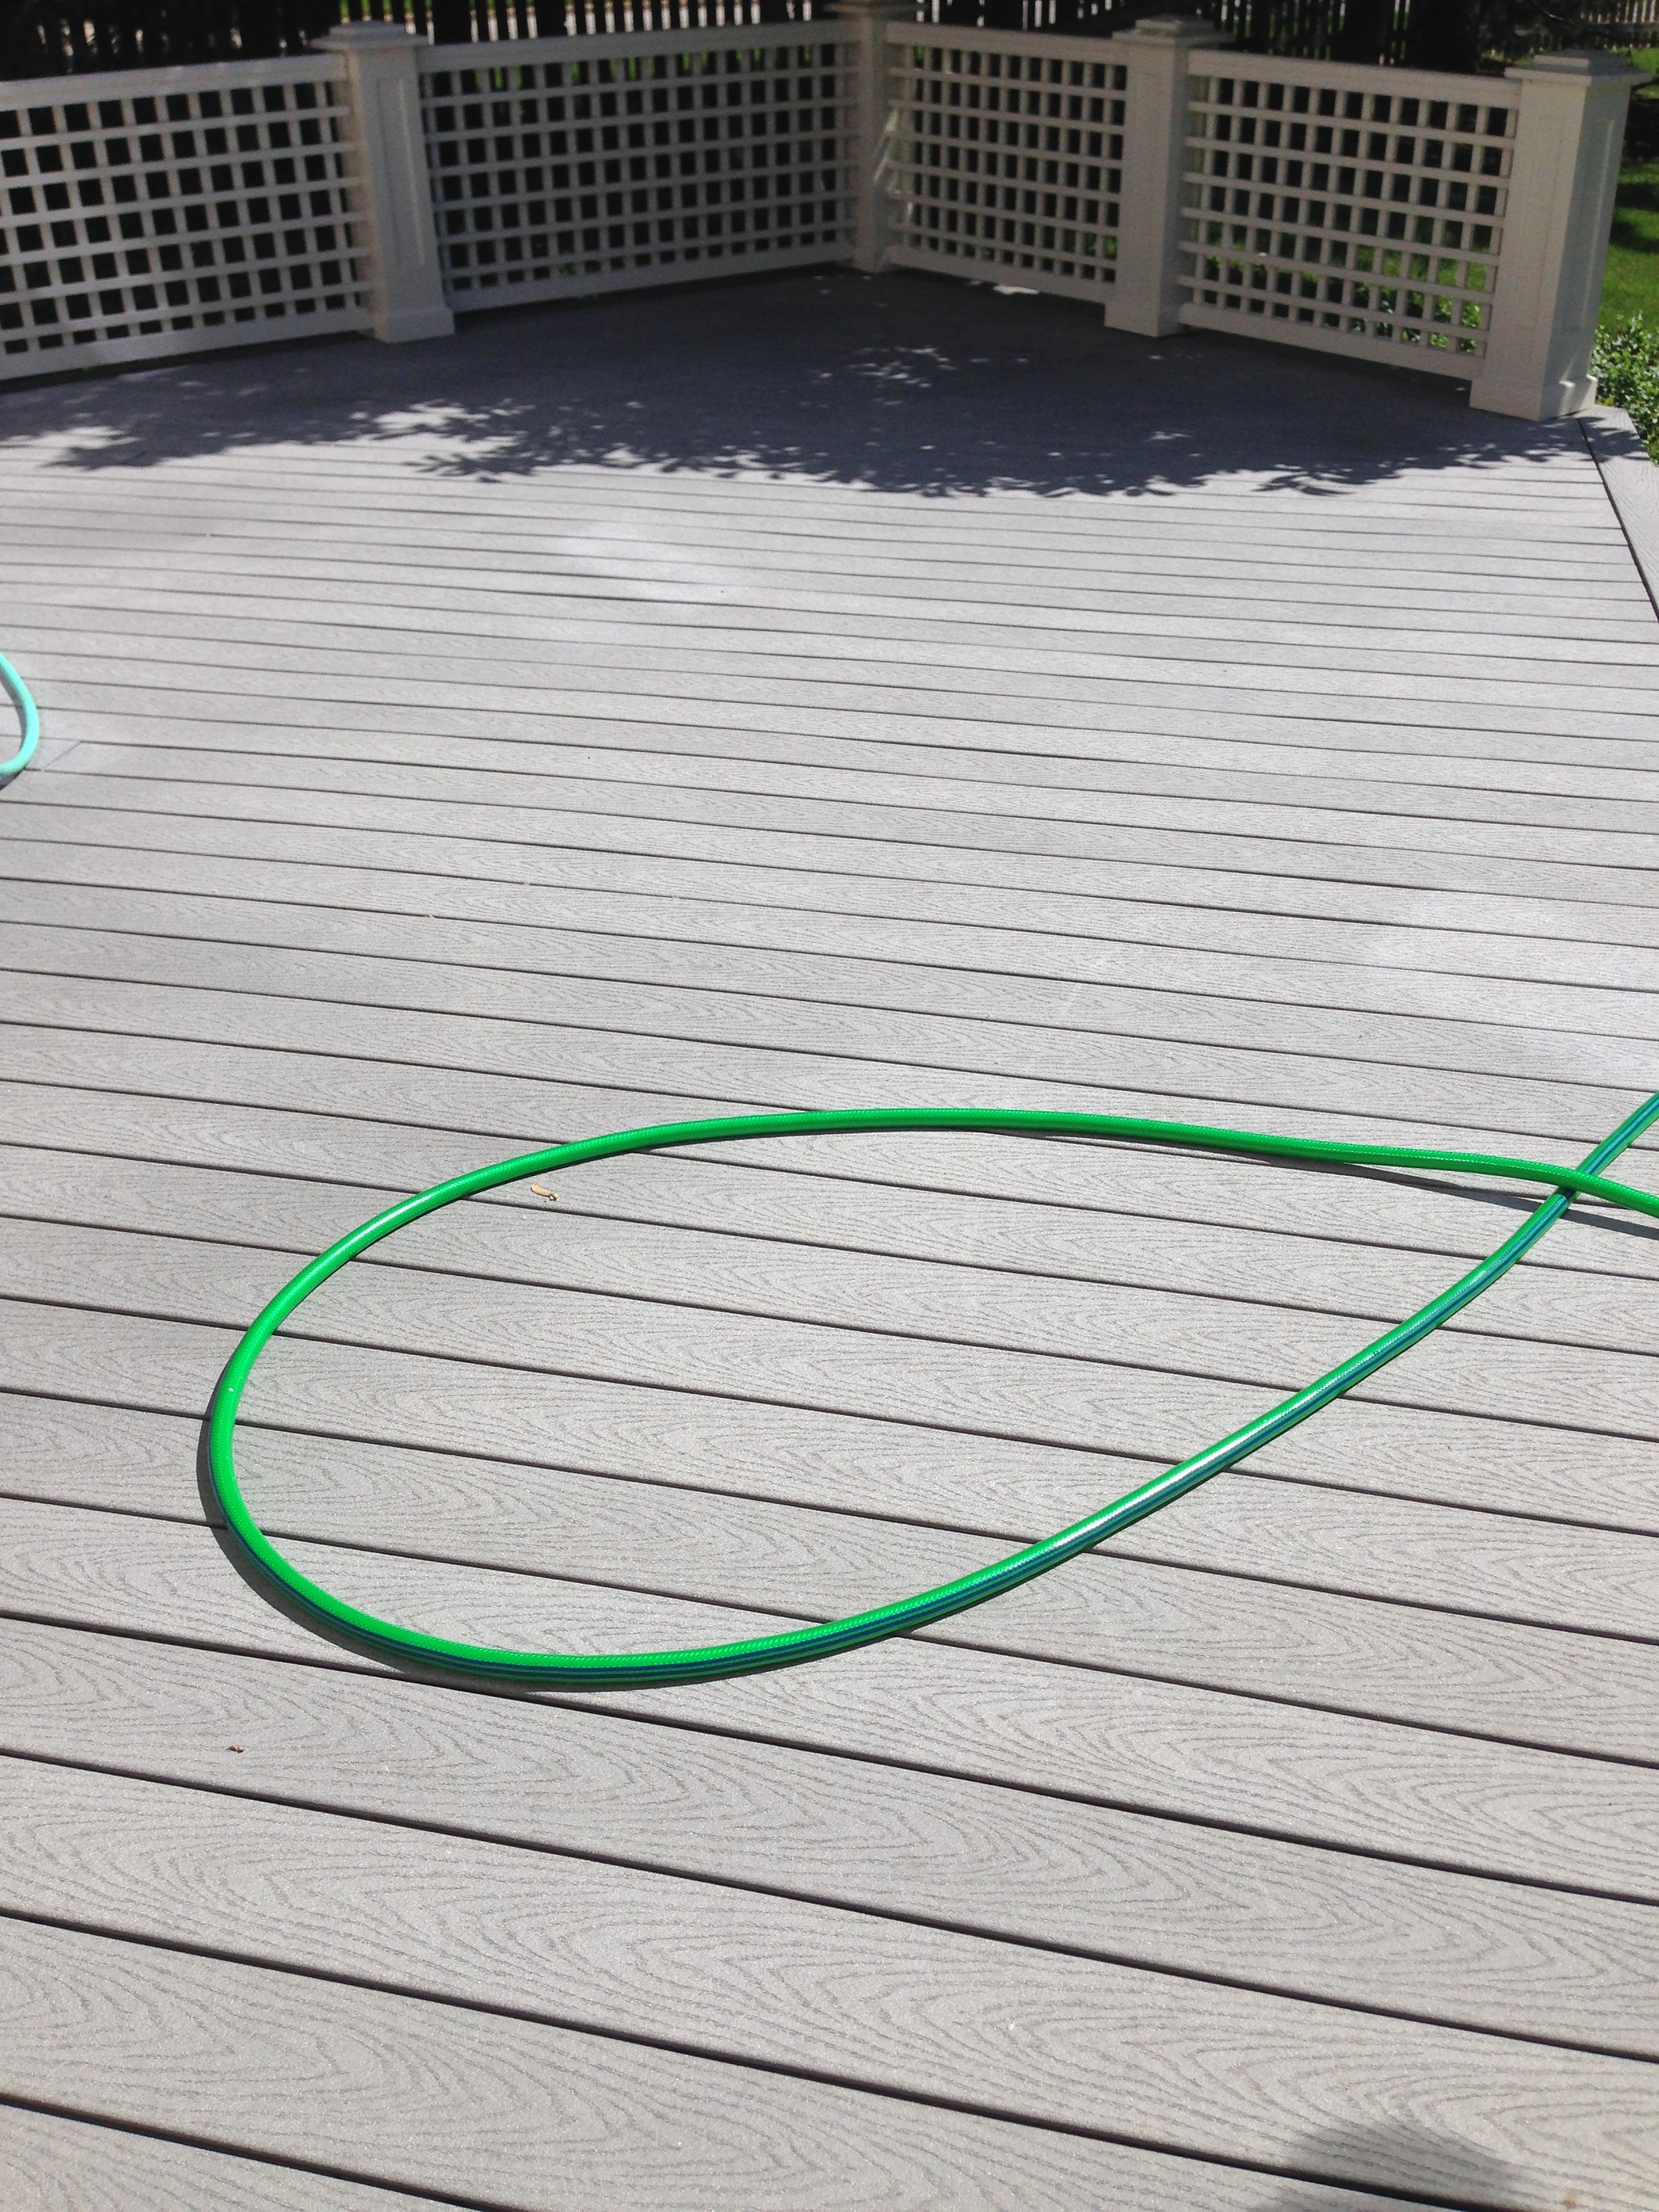 Trex deck and mold